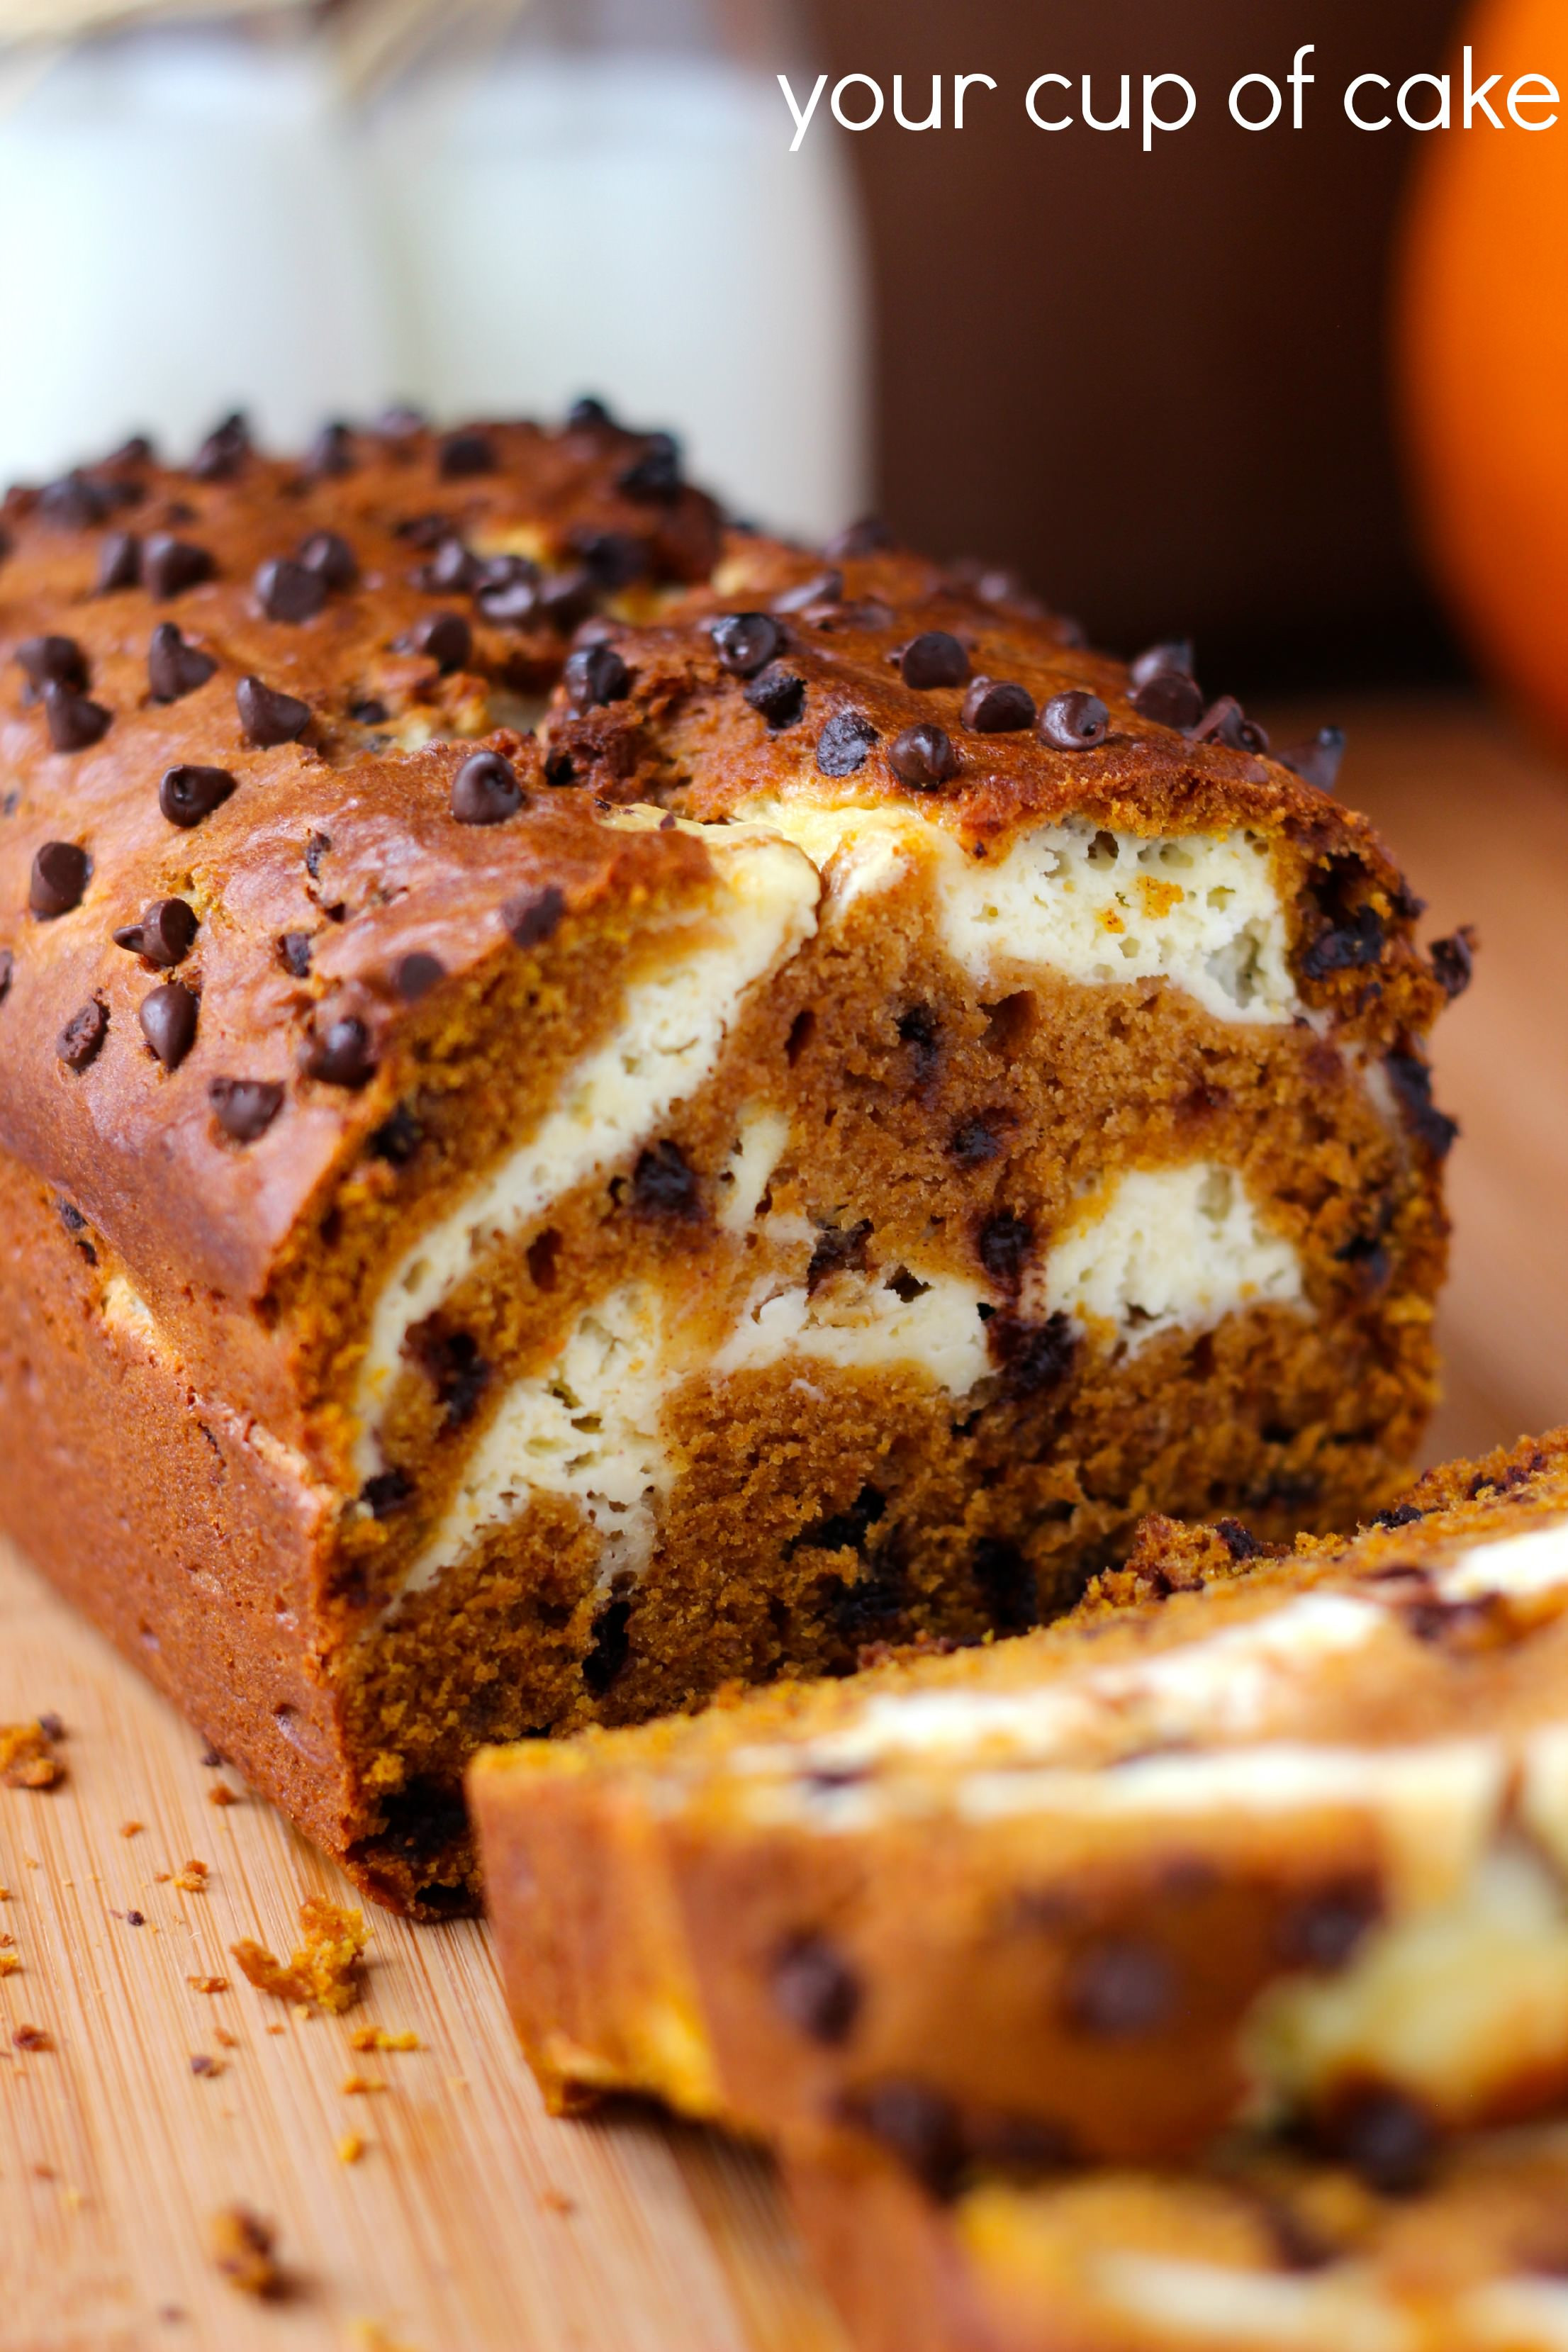 Pumpkin Bread With Cream Cheese  Pumpkin Cream Cheese Bread and Muffins Your Cup of Cake